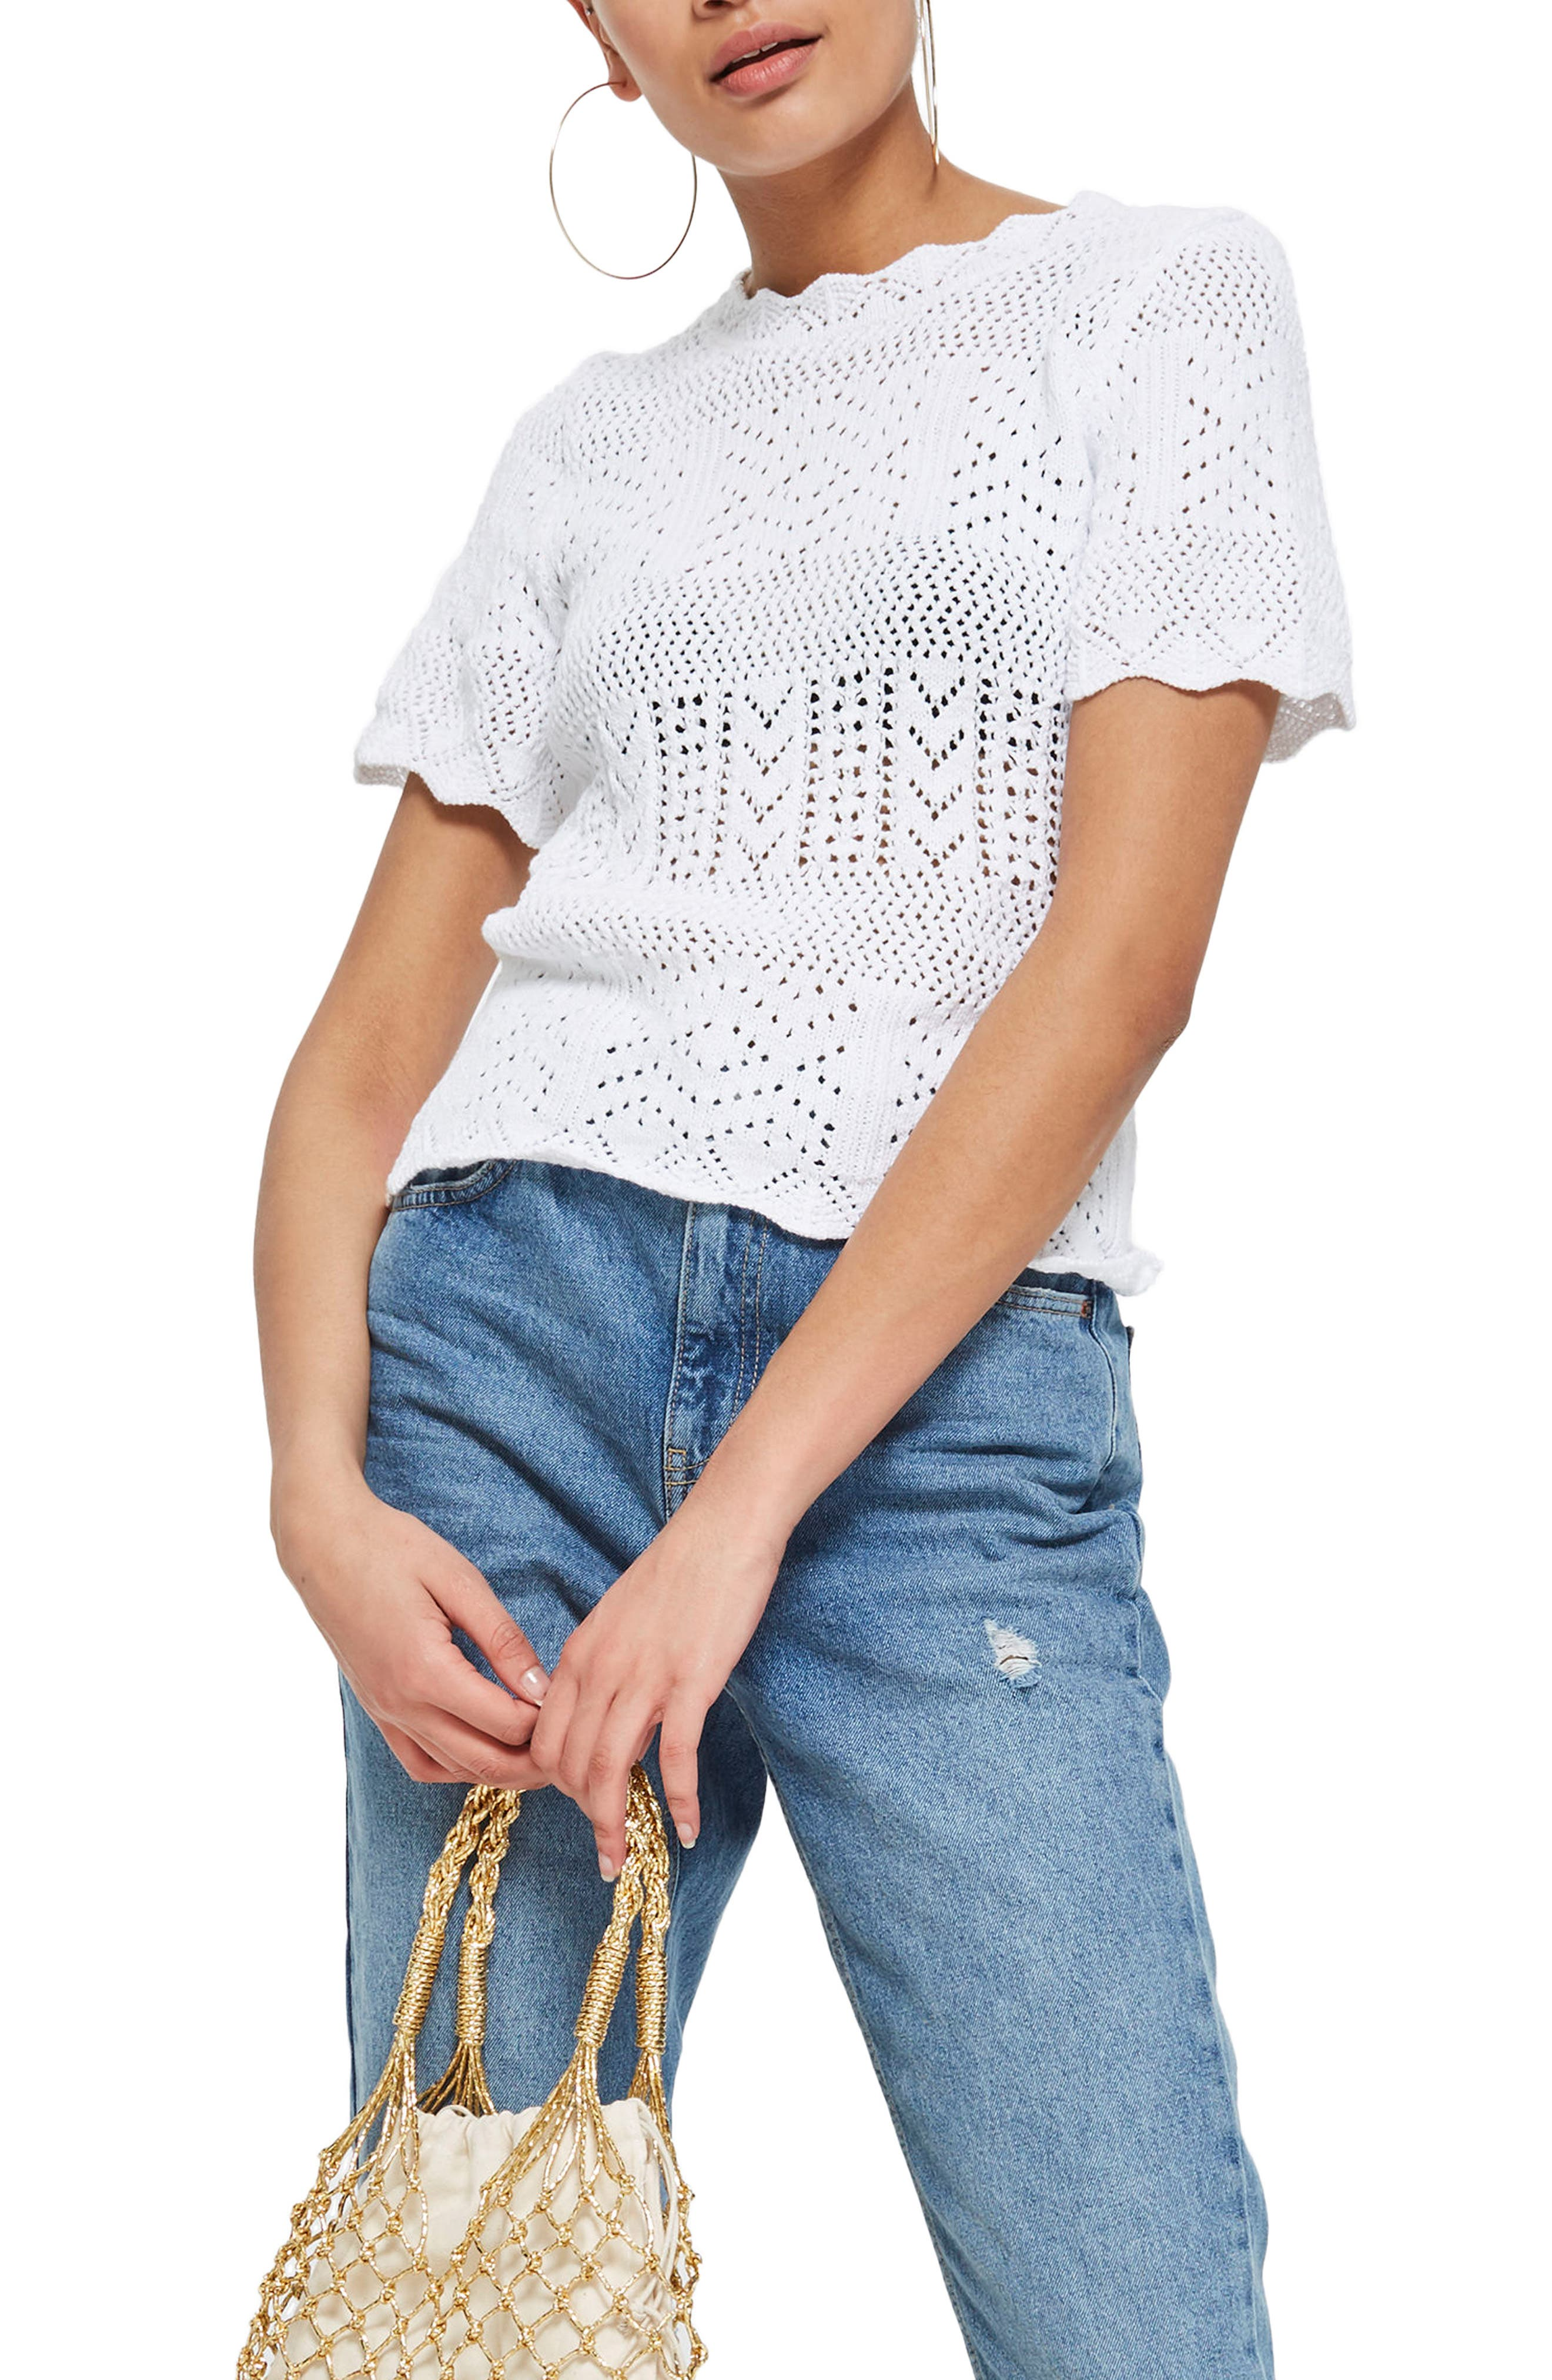 Alternate Image 1 Selected - Topshop Stitchy Scallop Hem Knit Top